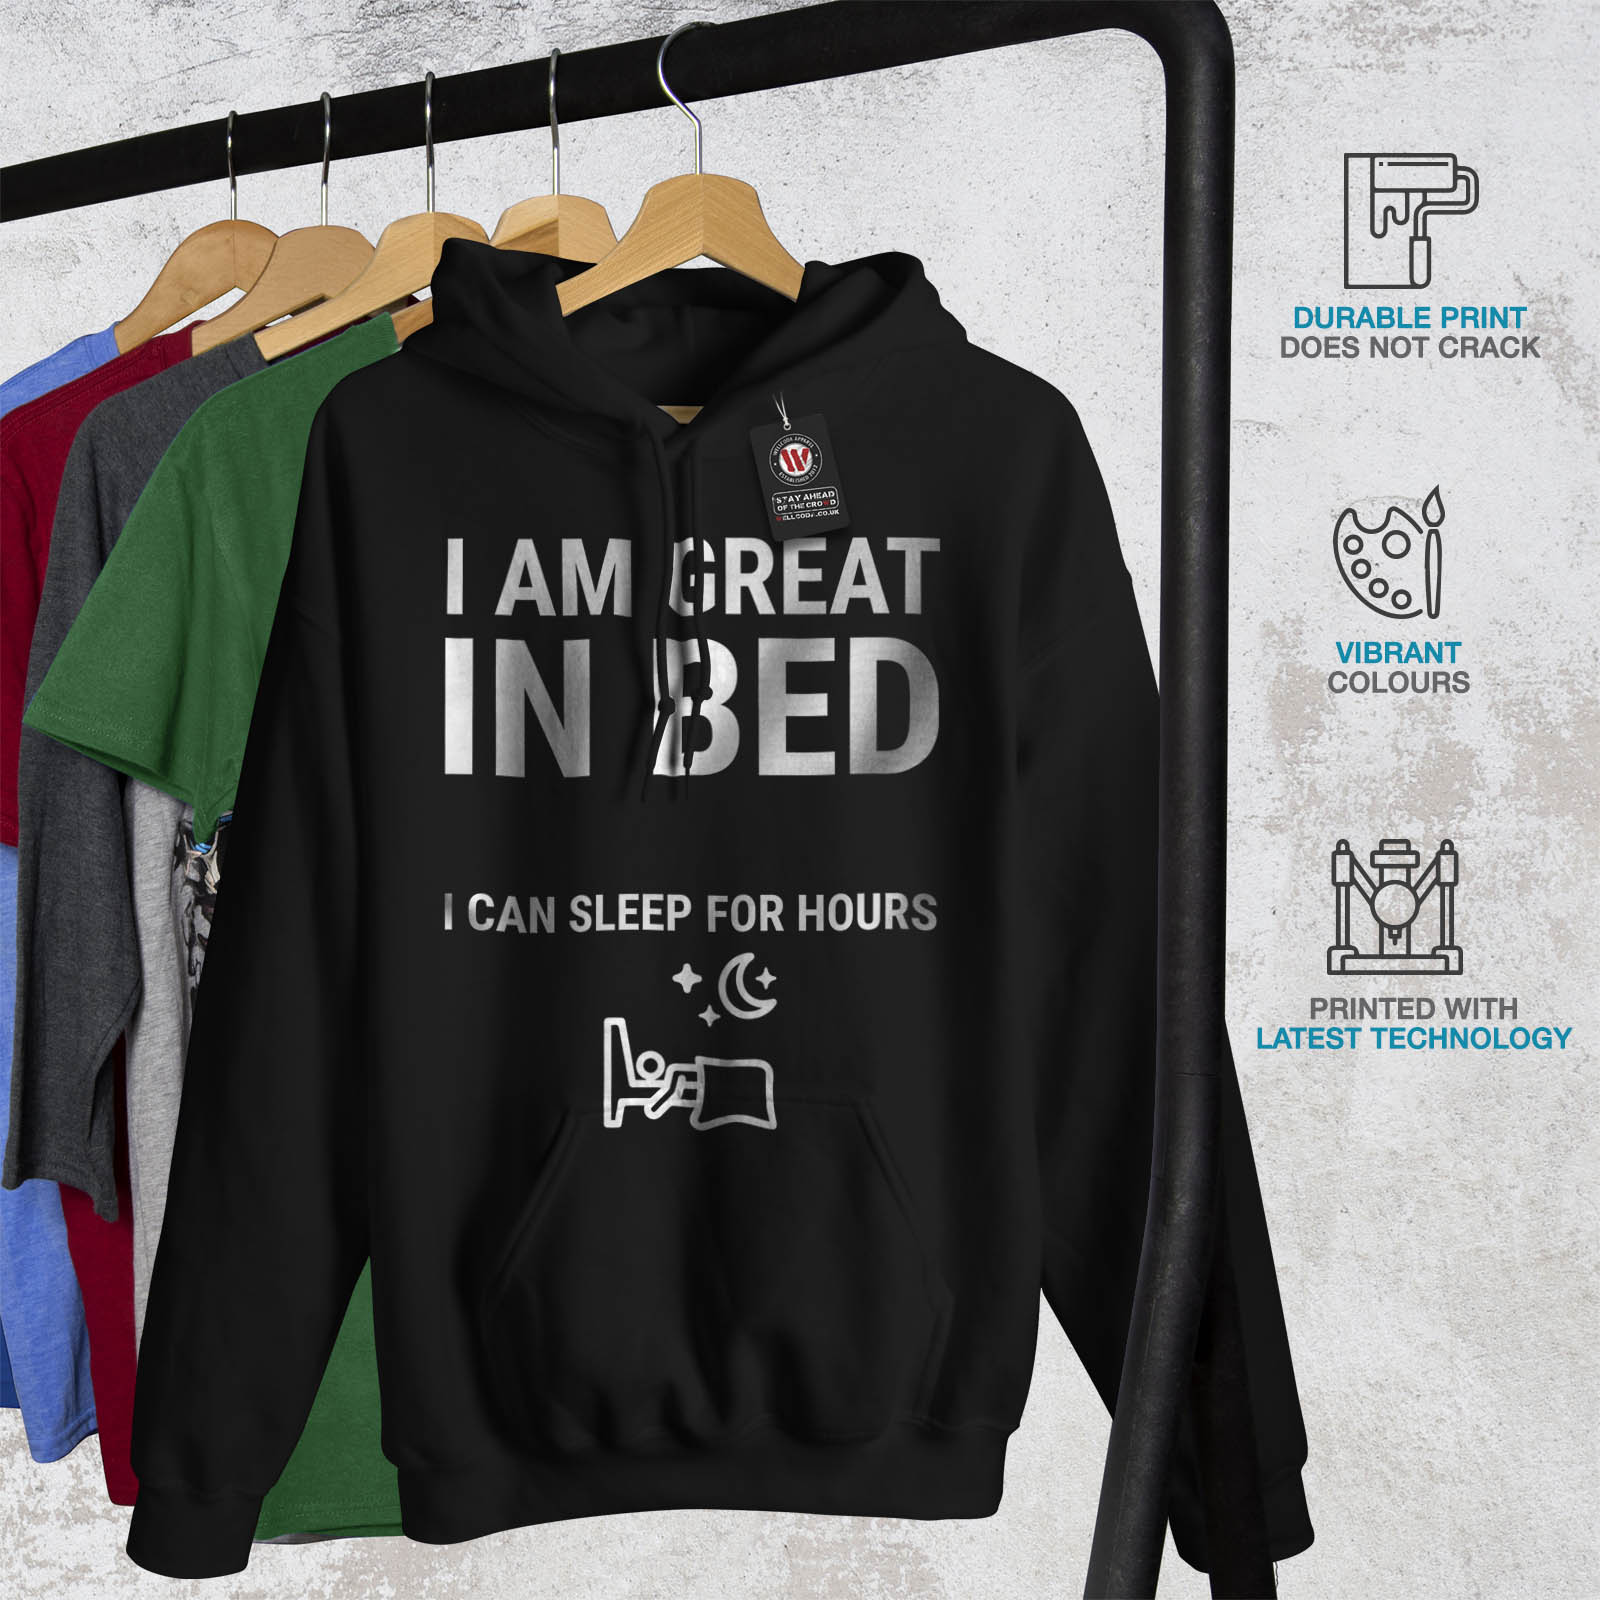 In nera Felpa cappuccio Bed da Felpa con uomo casual Wellcoda Procrastination Great wPxIPKq6f1